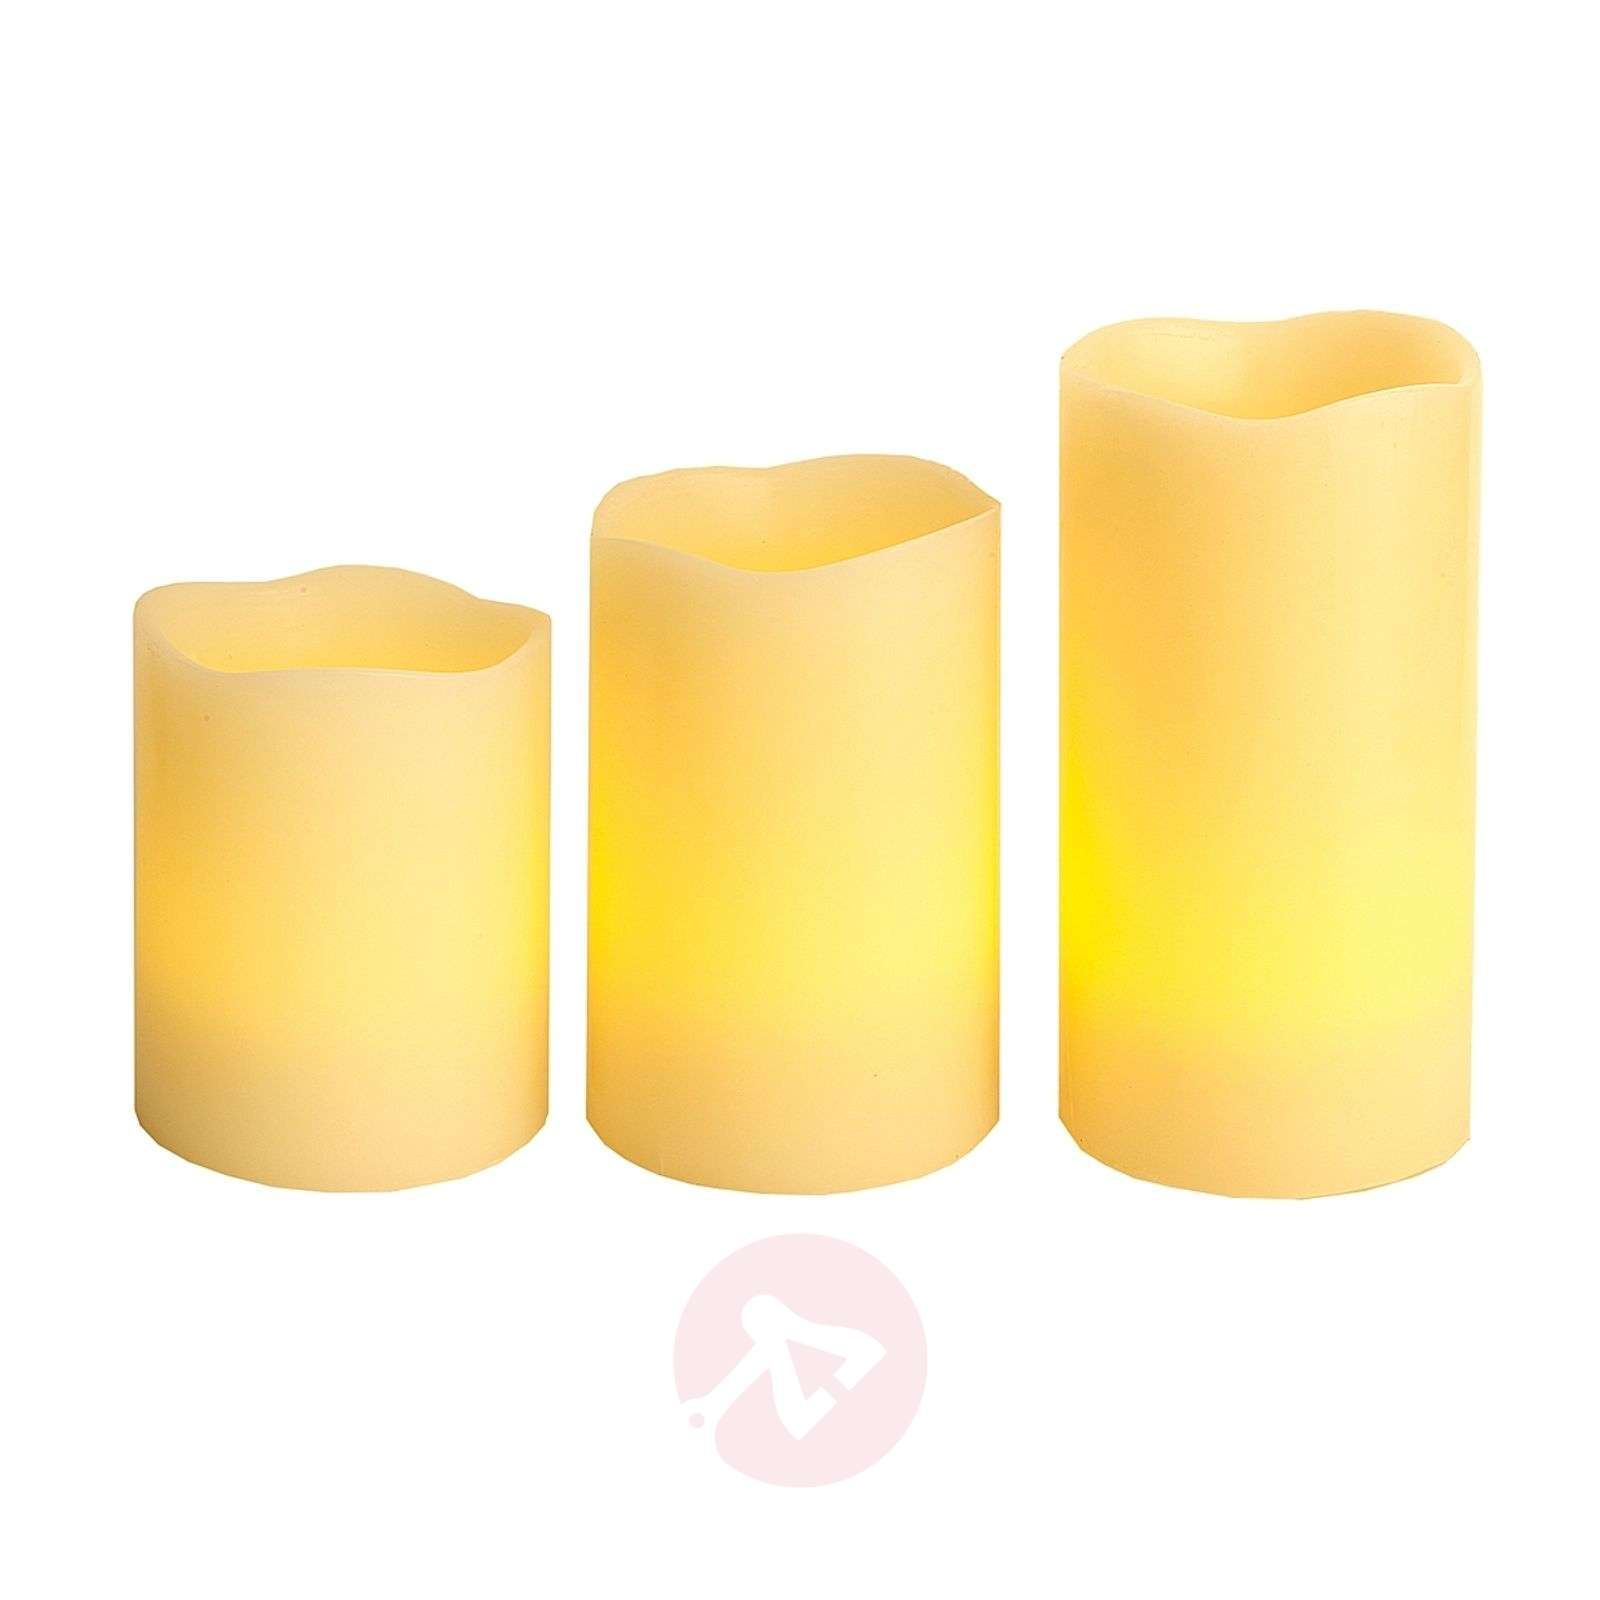 LED Candle Wax RGB kleurverandering and afstandsbed.-1522390-01